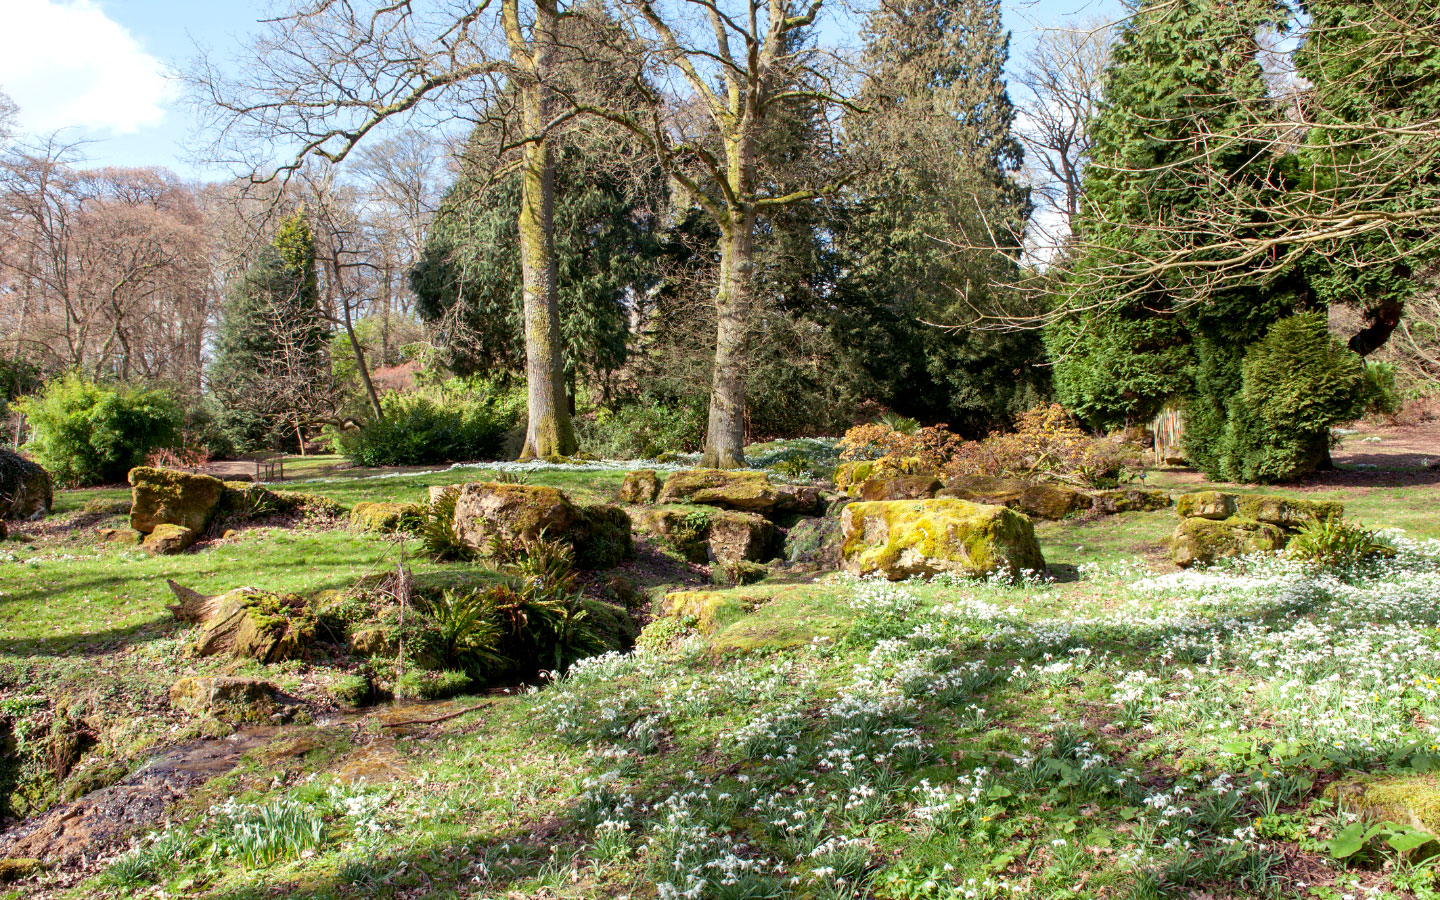 Snowdrops at Batsford Arboretum in the Cotswolds